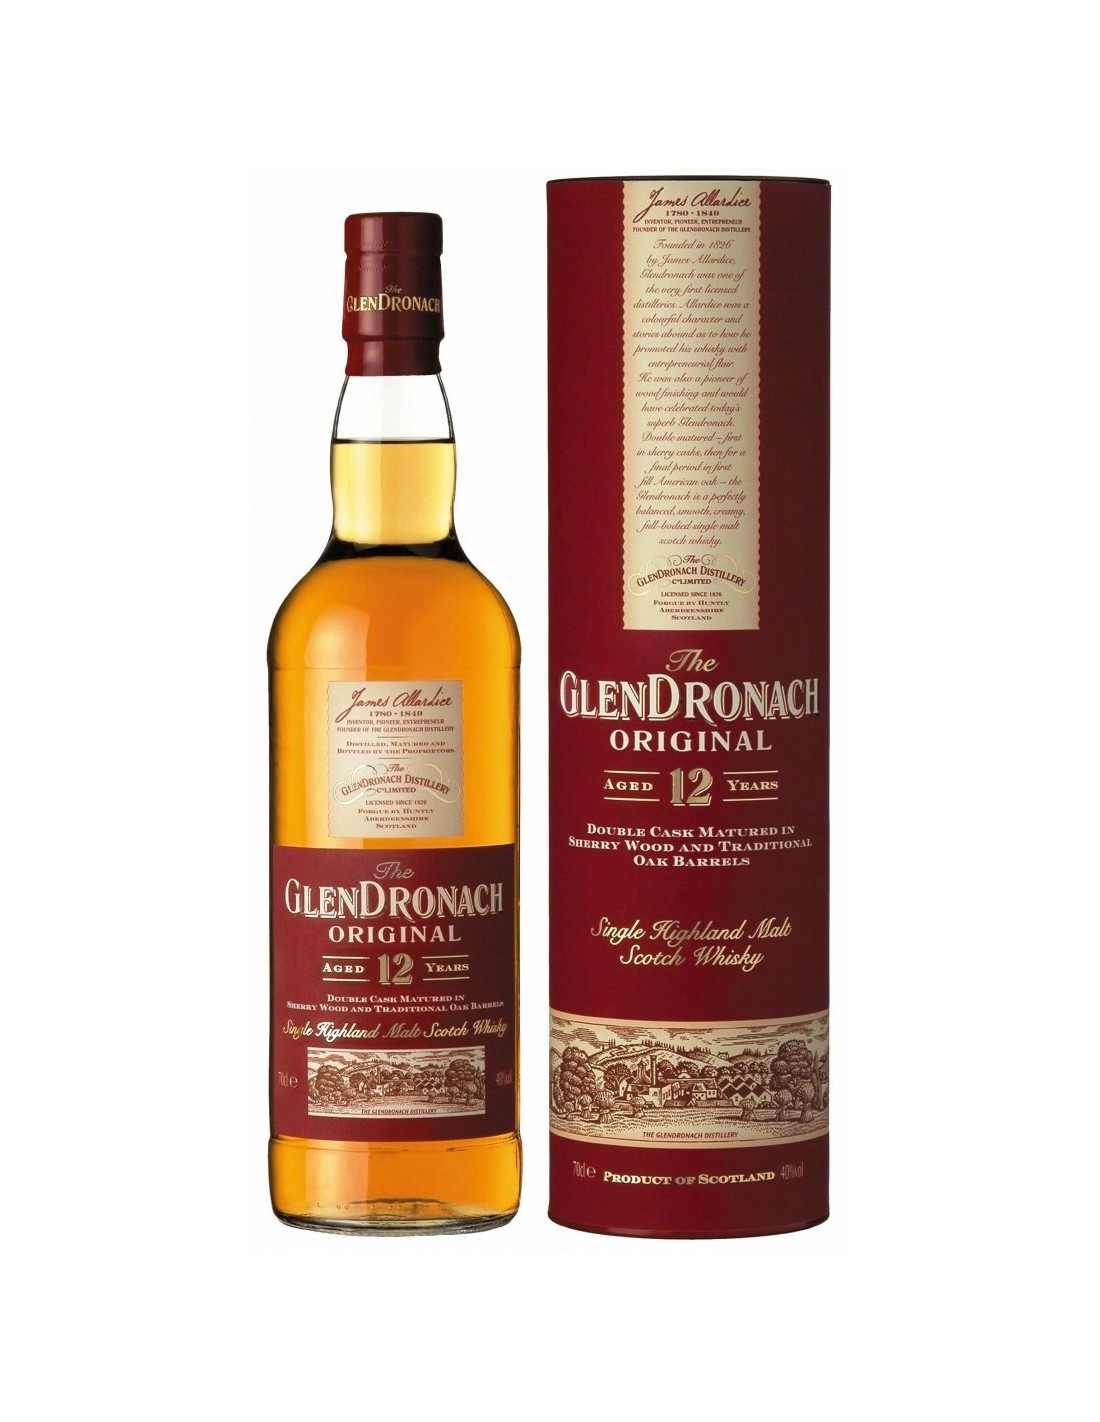 Whisky Single Malt Glendronach, 12 ani, 43% alc., 0.7L, Scotia